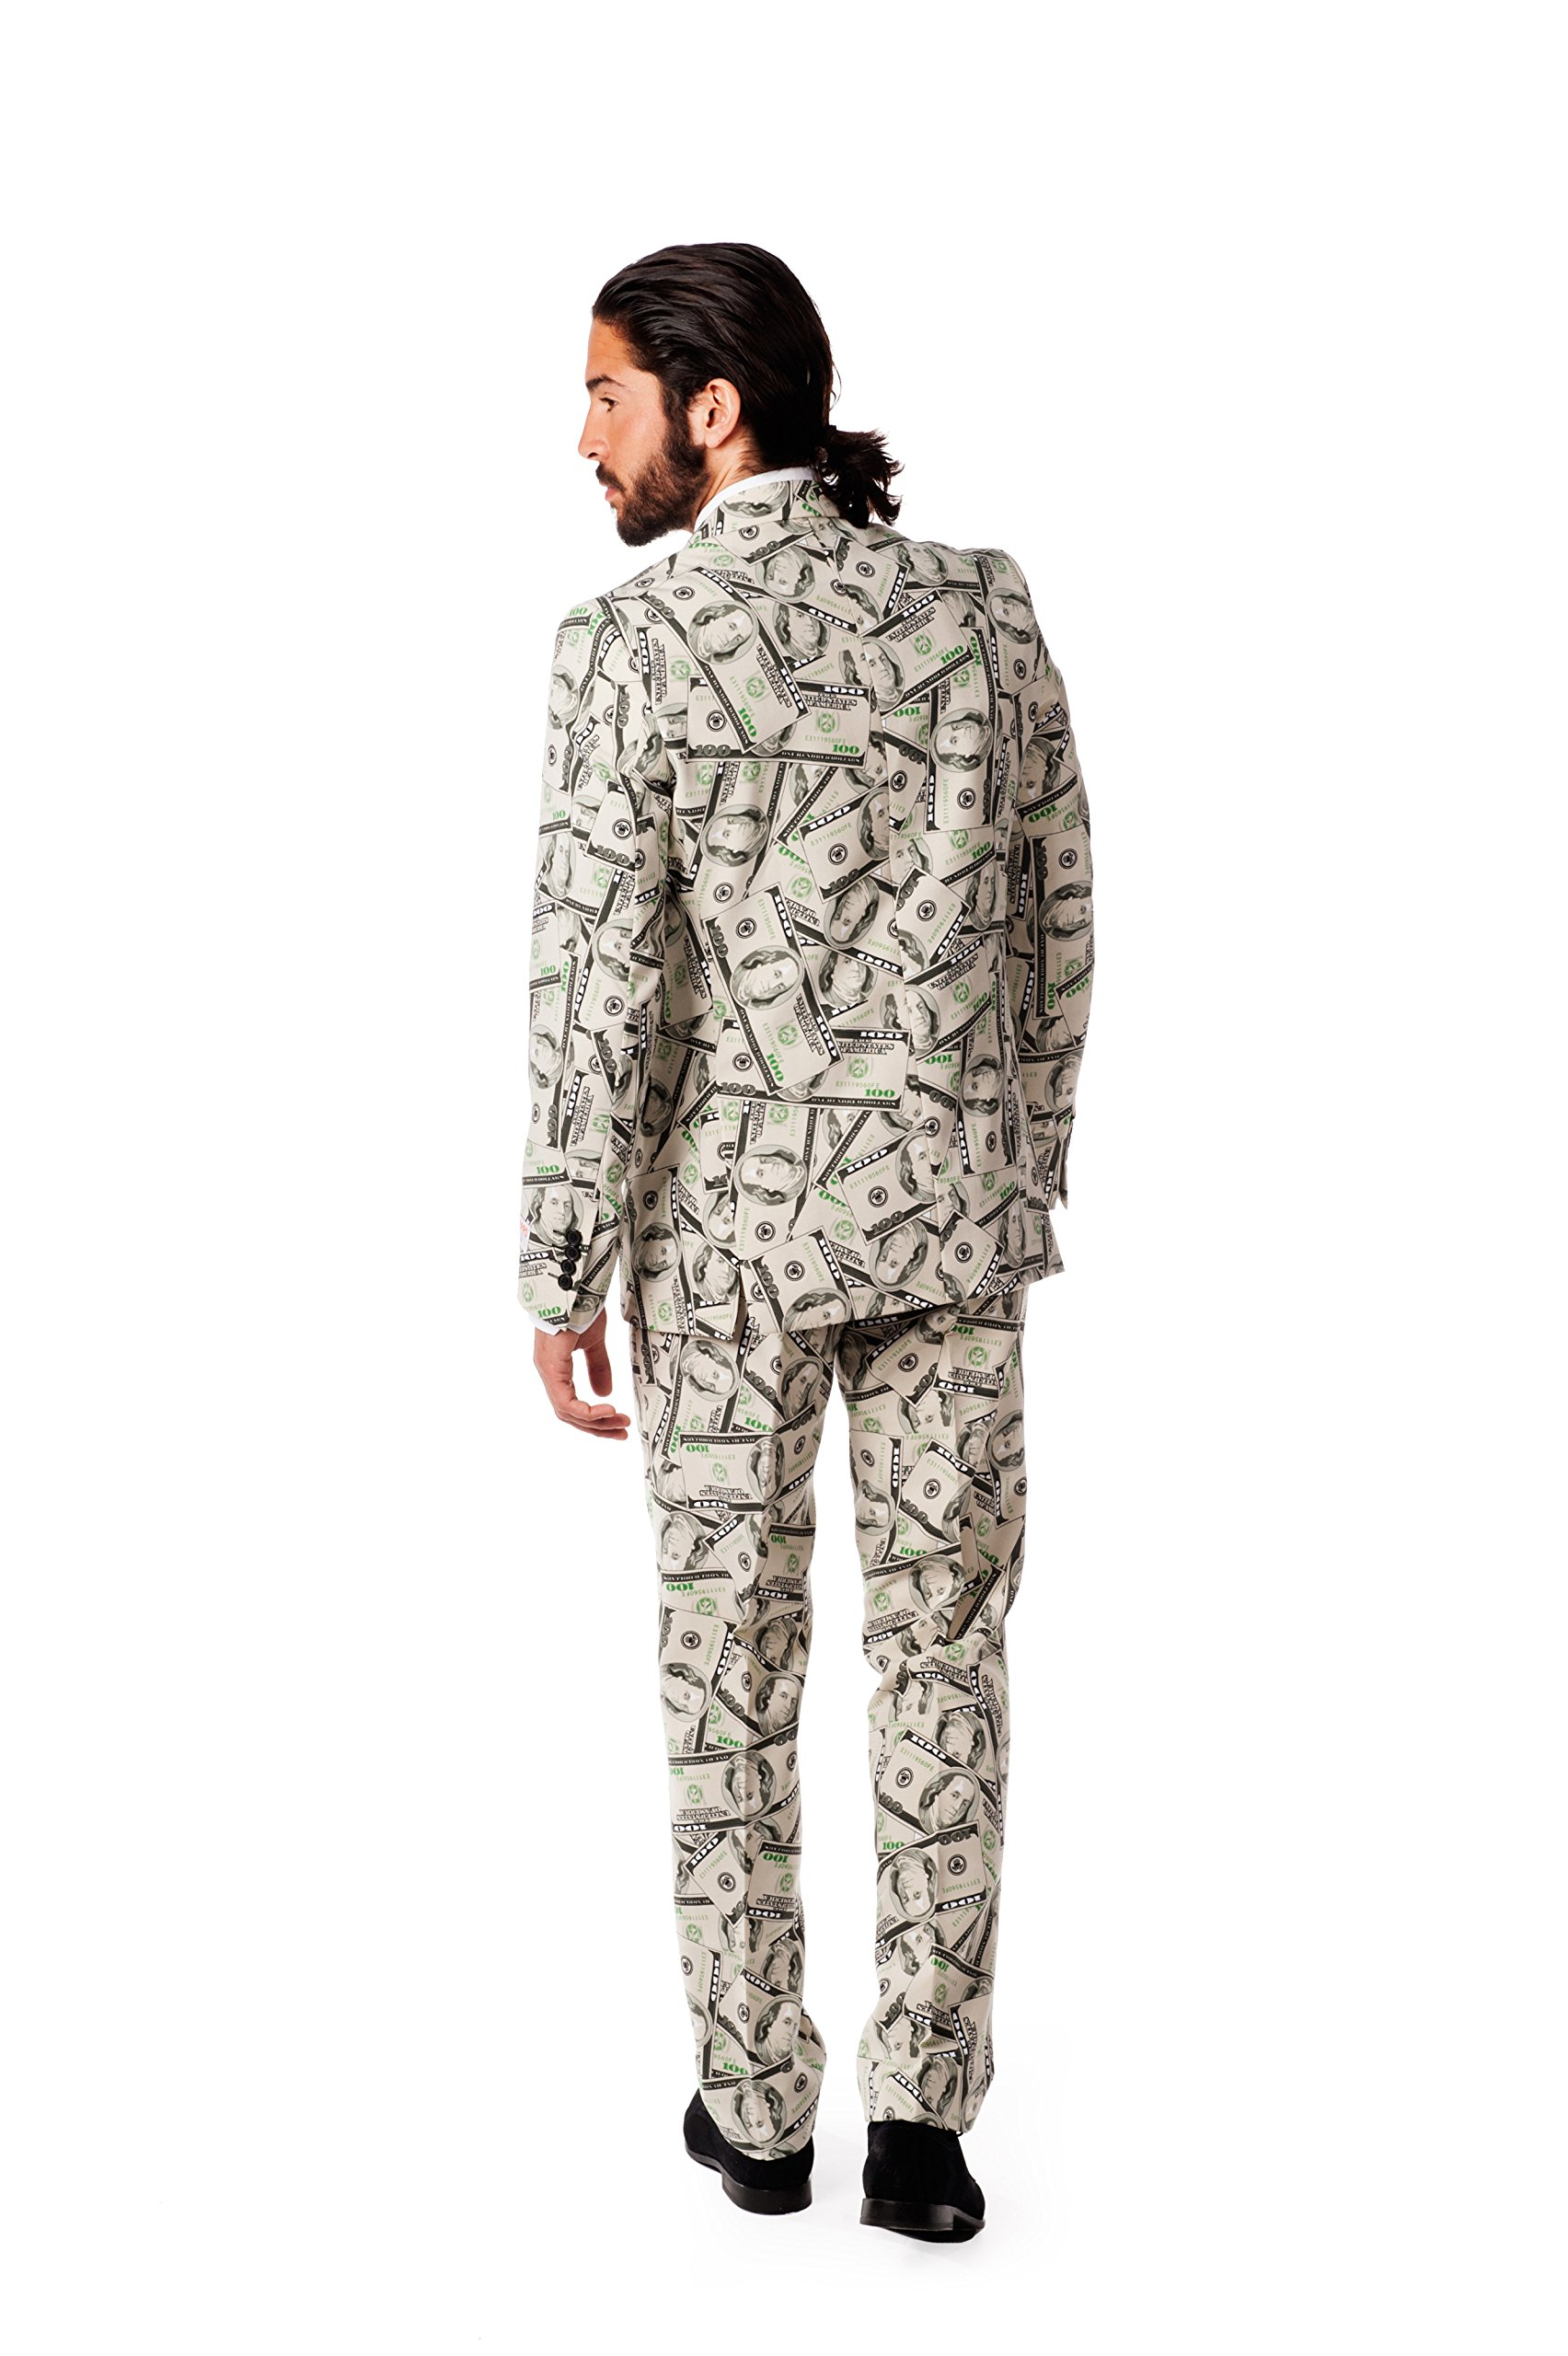 OppoSuits Men's Cashanova Party Costume Suit, Multi, 40 by Opposuits (Image #2)